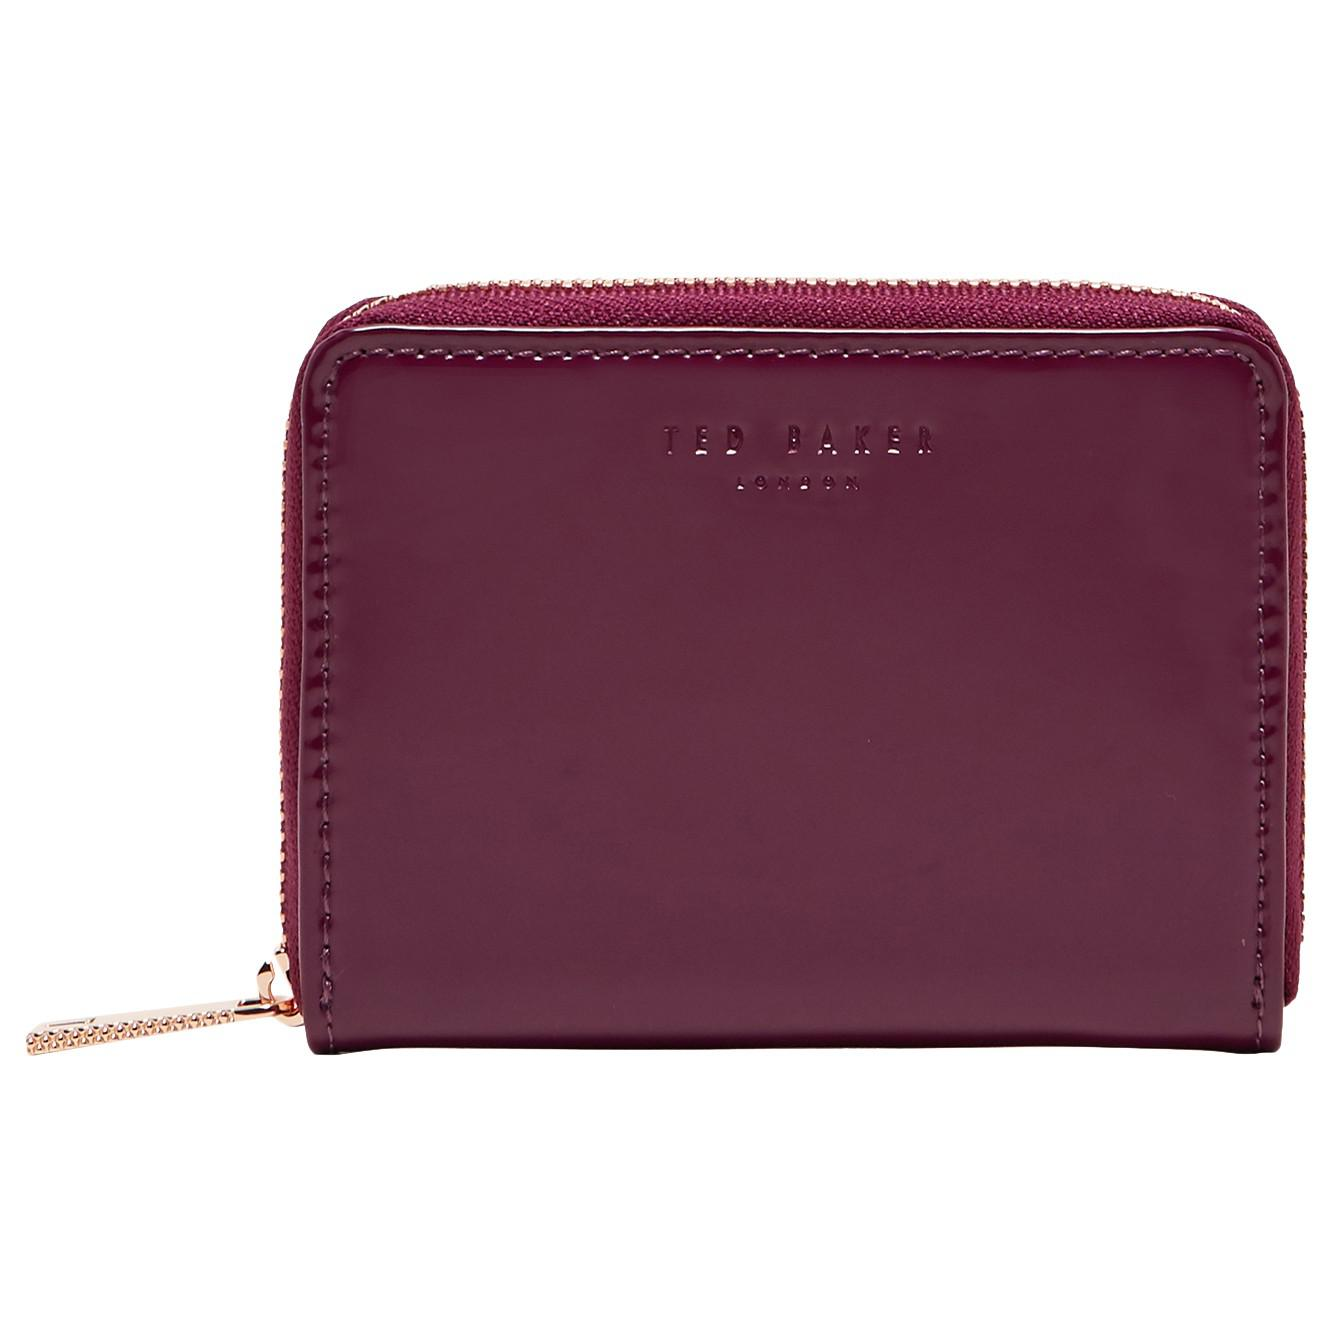 04633f9f0641 Ted Baker Omarion Leather Mini Purse in Purple - Lyst